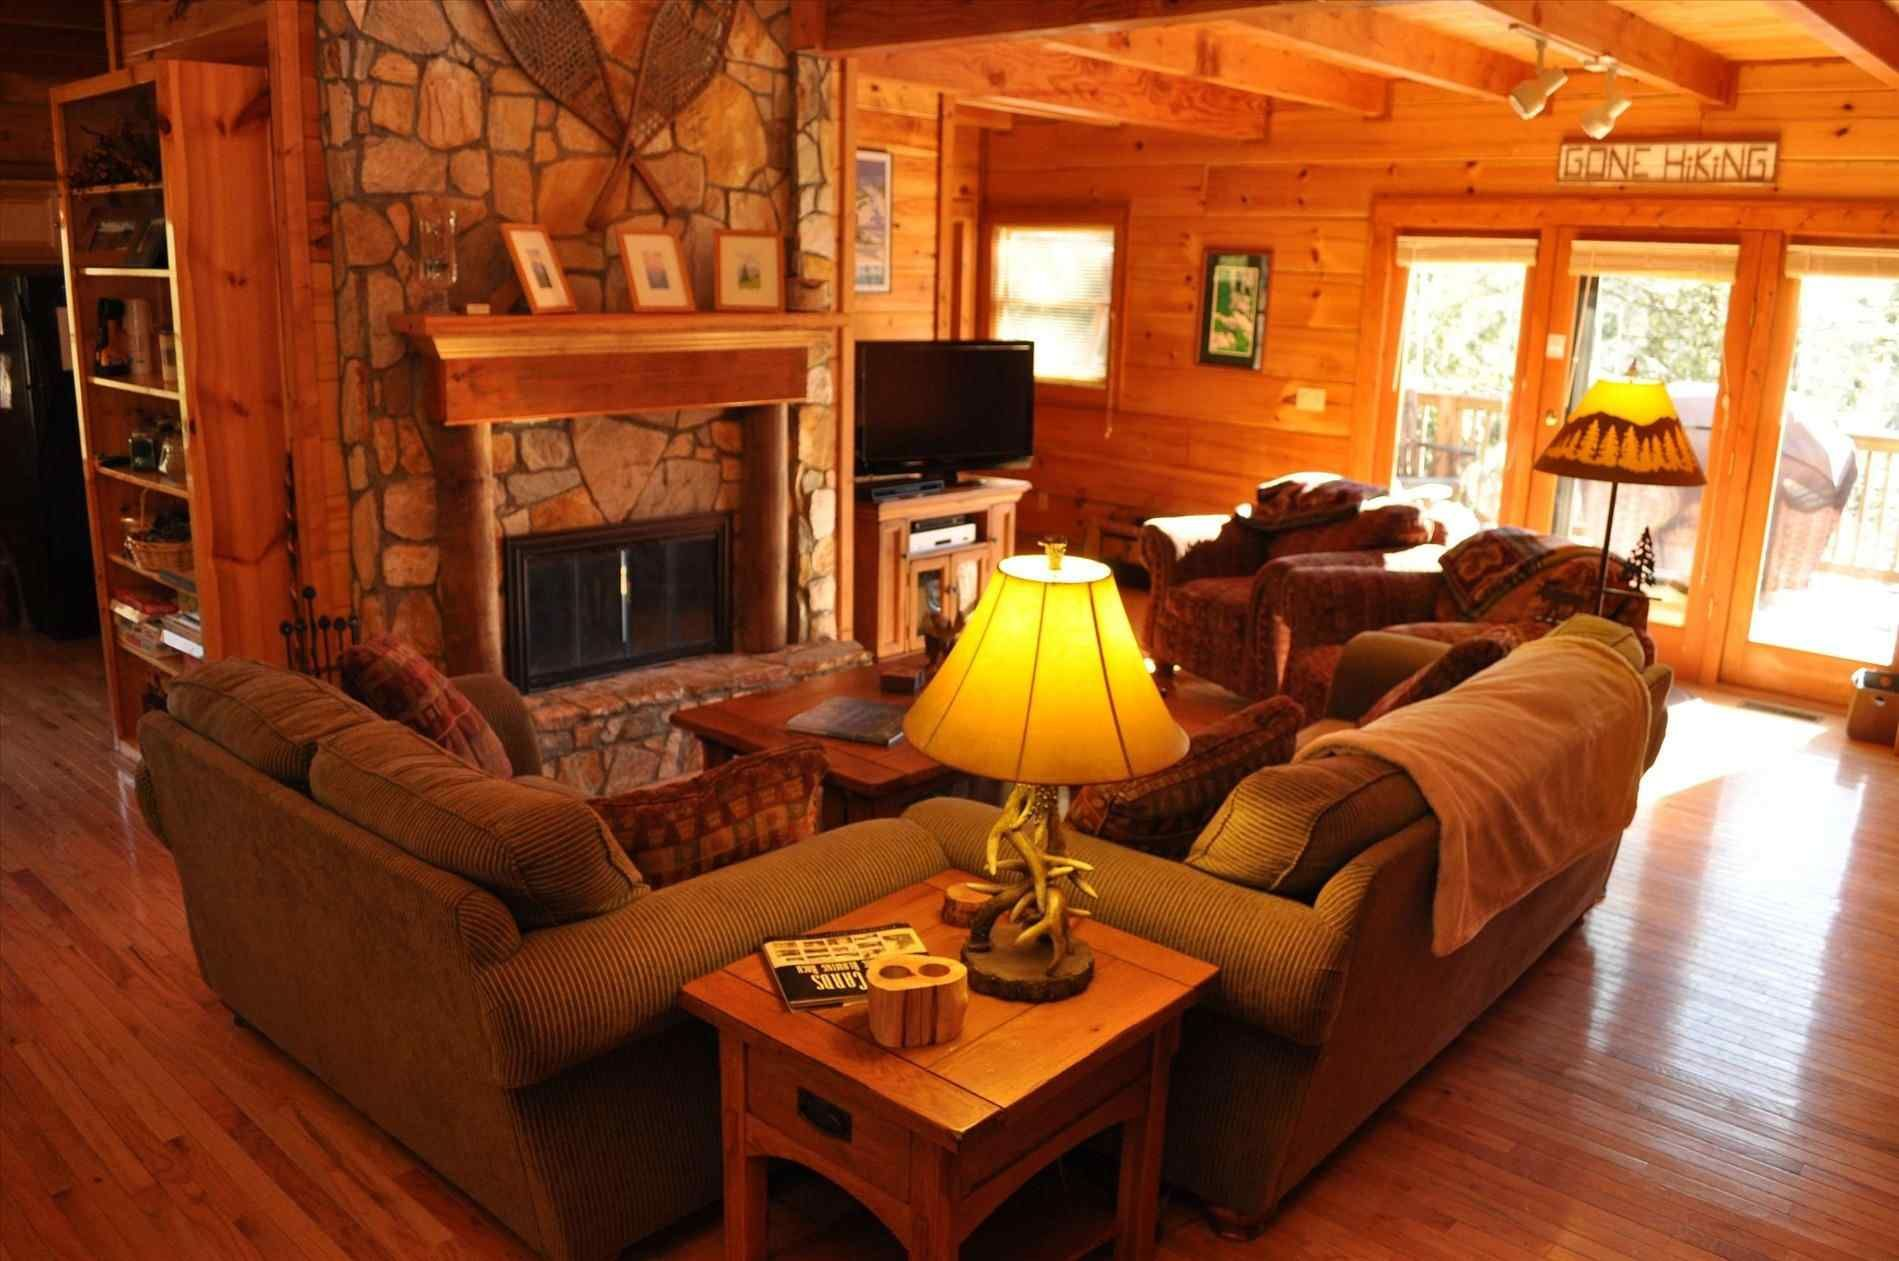 Room Ideas Living Room Rustic Ideas For A Cozy Organic Decorating